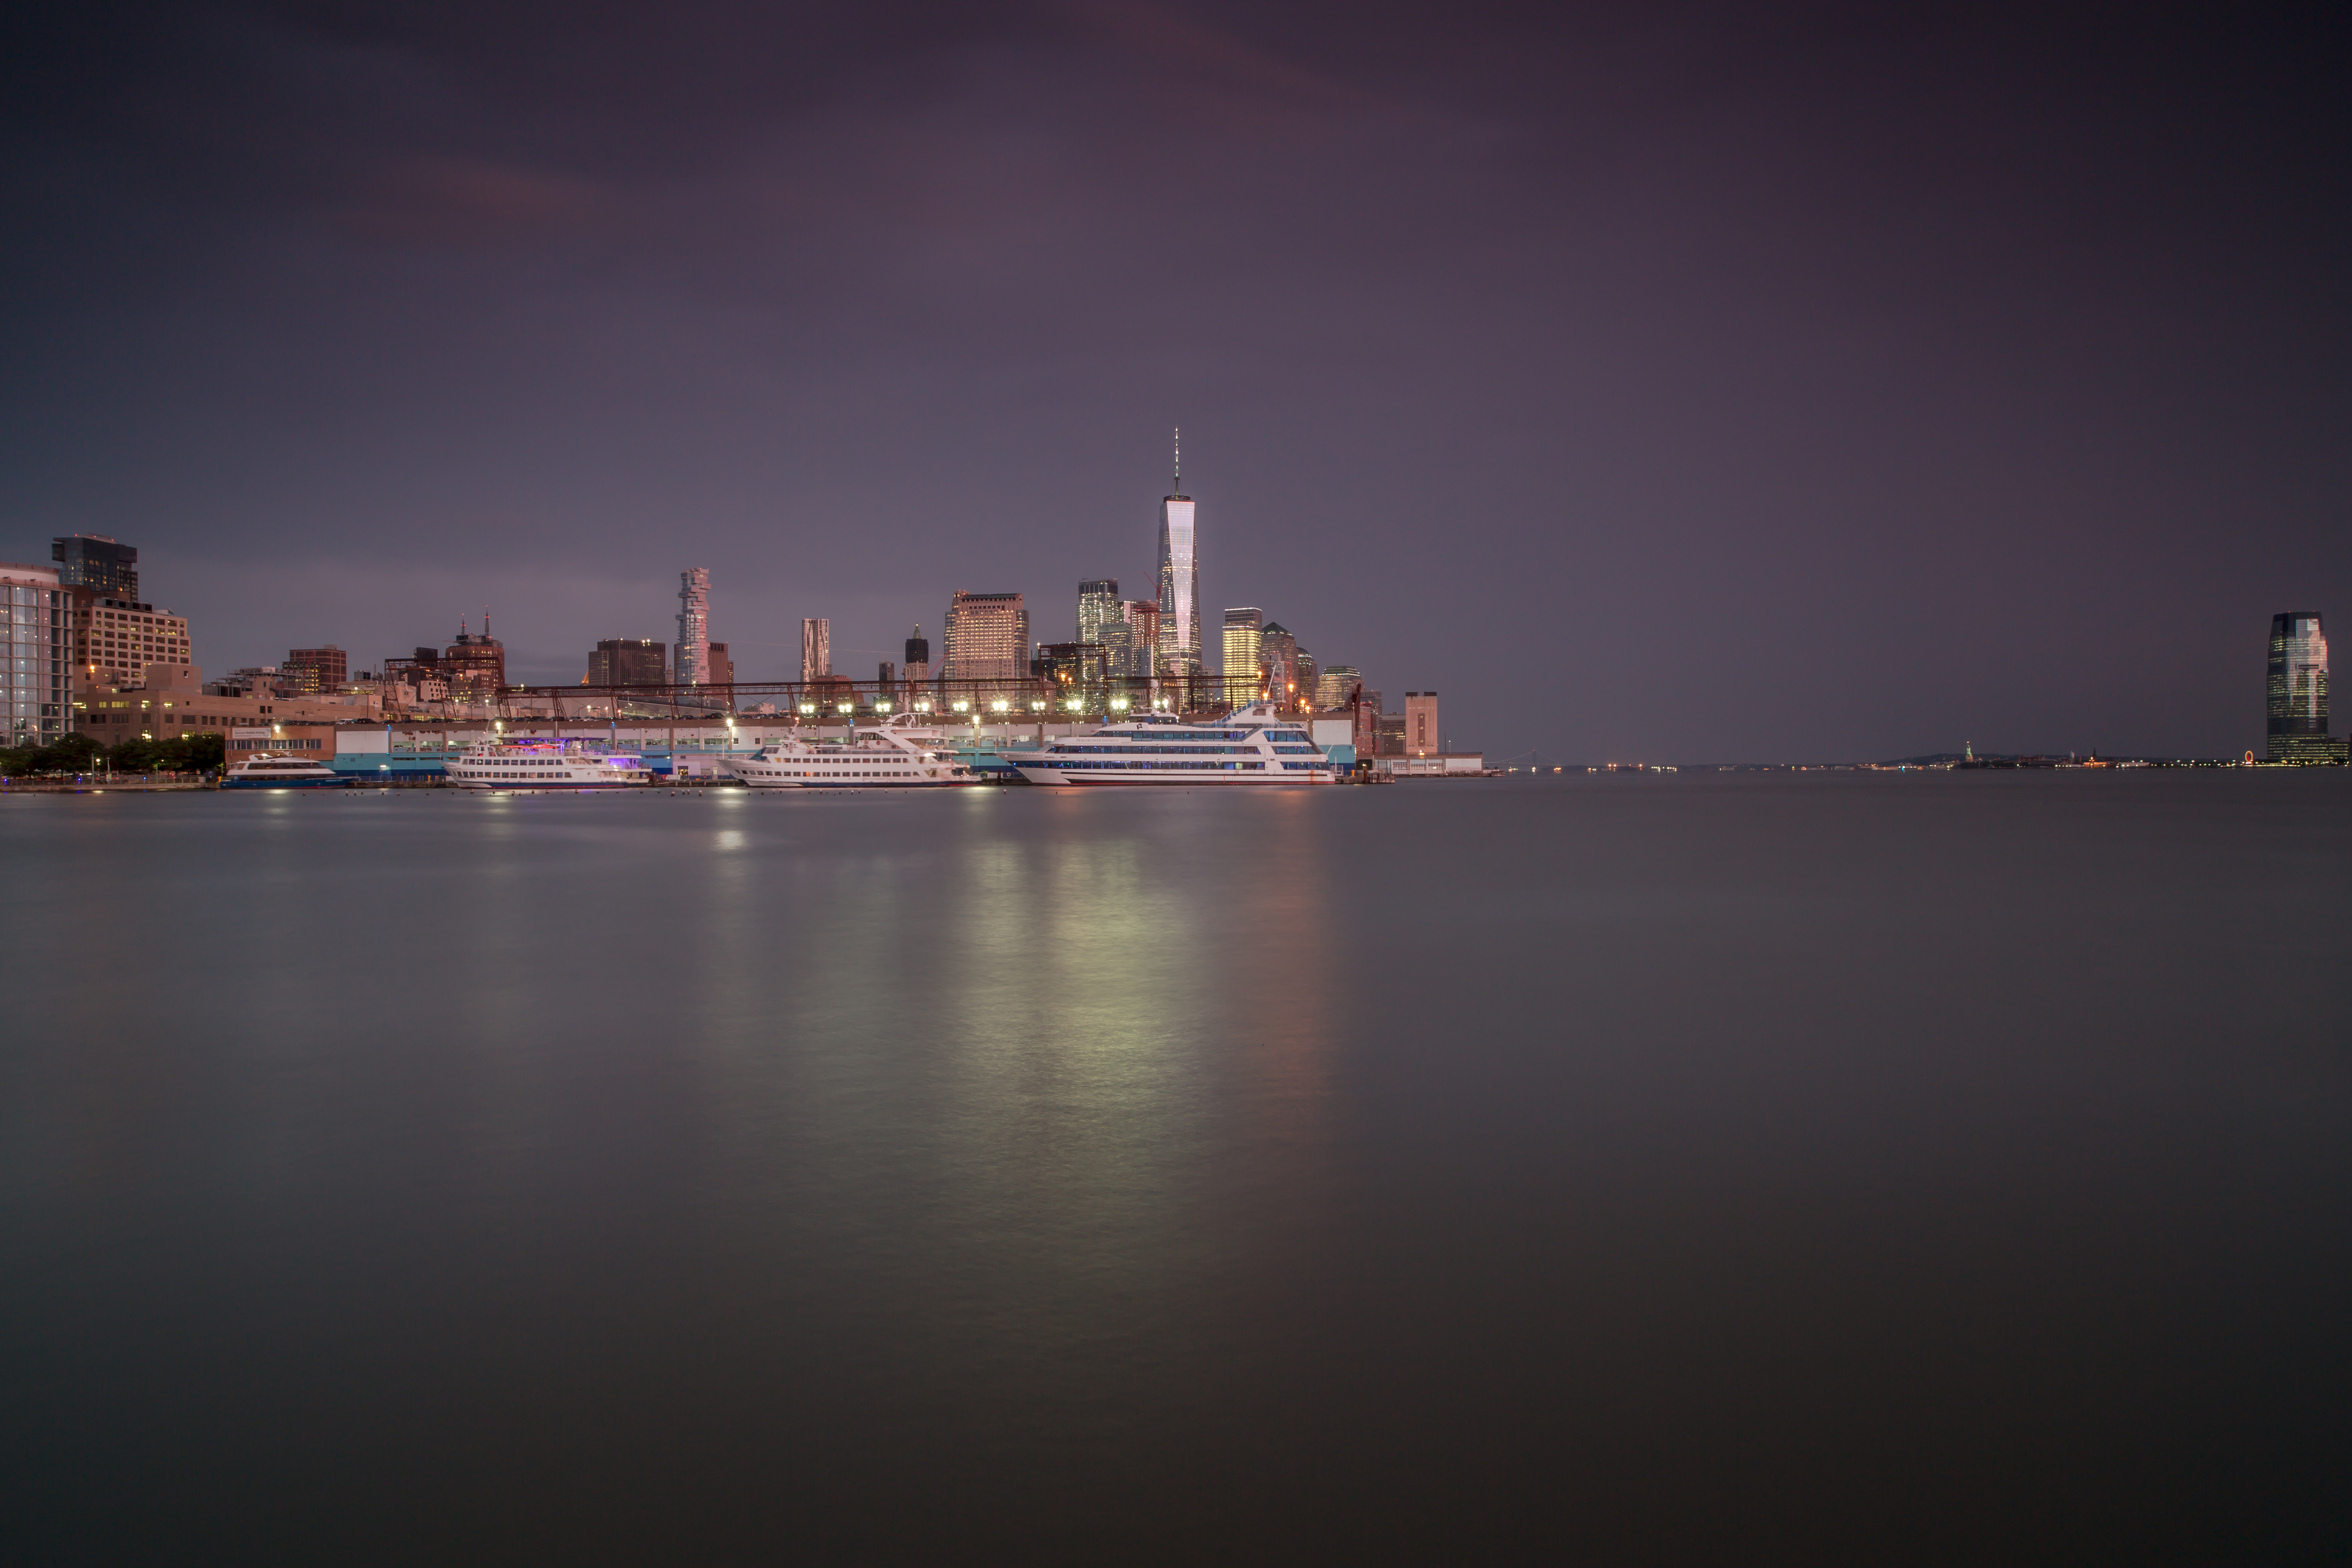 Downtown Manhattan during sunset on a stormy day example image 1